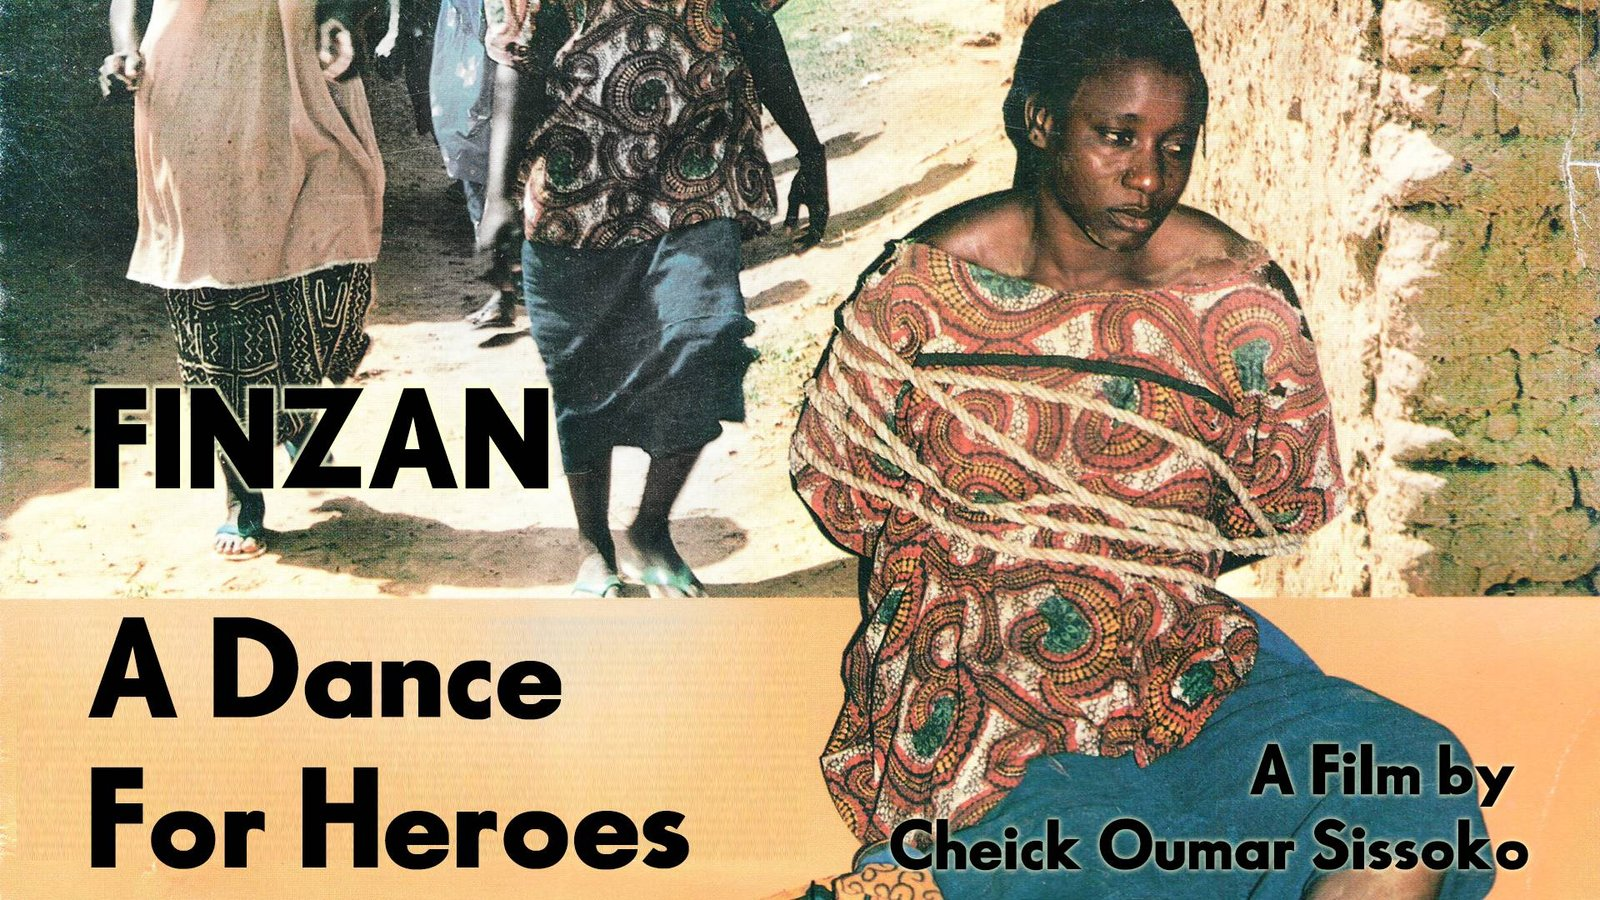 A Dance for the Heroes - Finzan